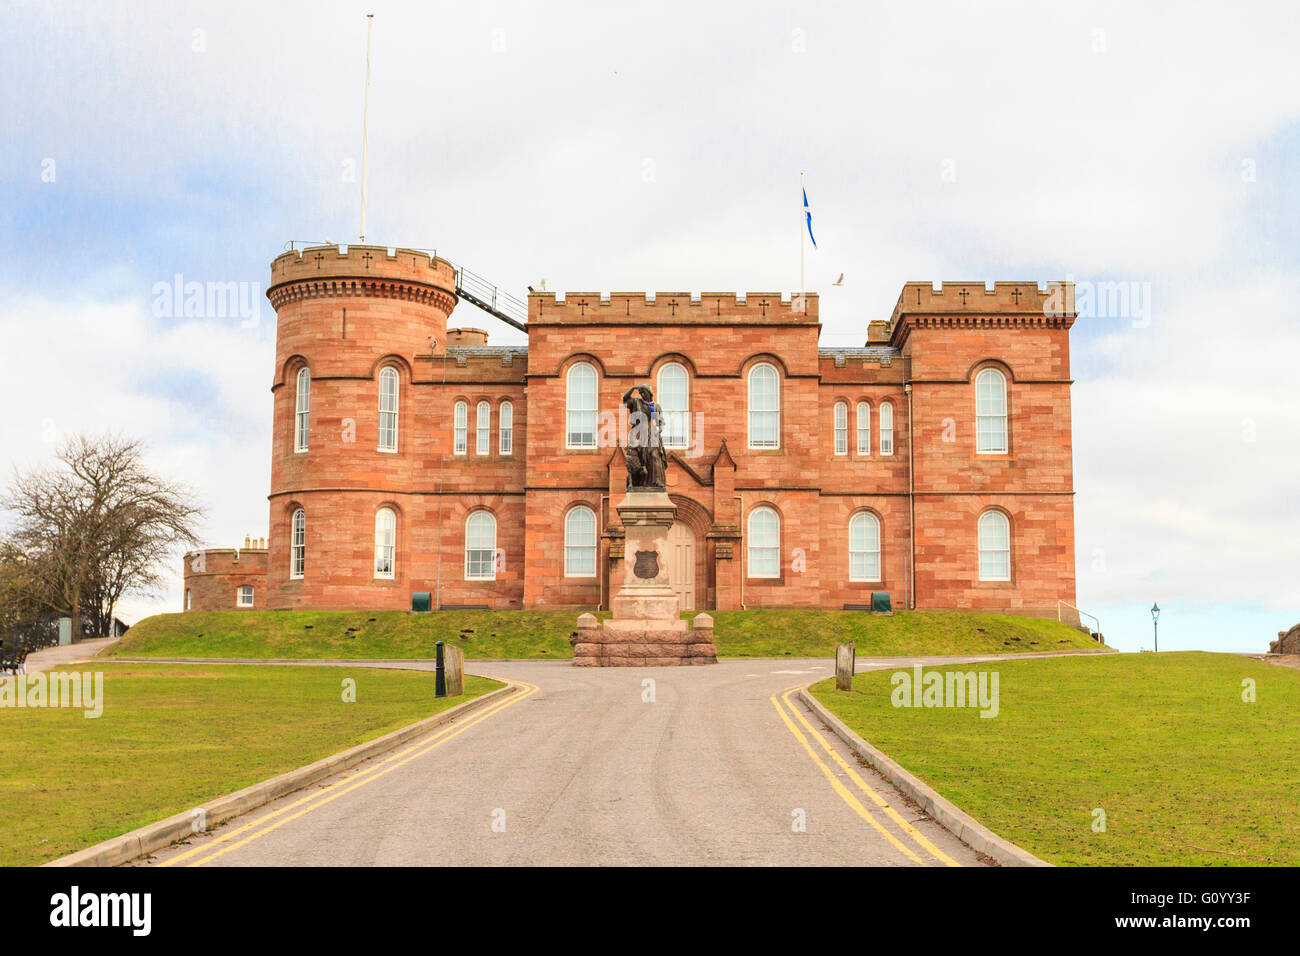 Front view of Inverness Castle, Inverness, Scotland - Stock Image